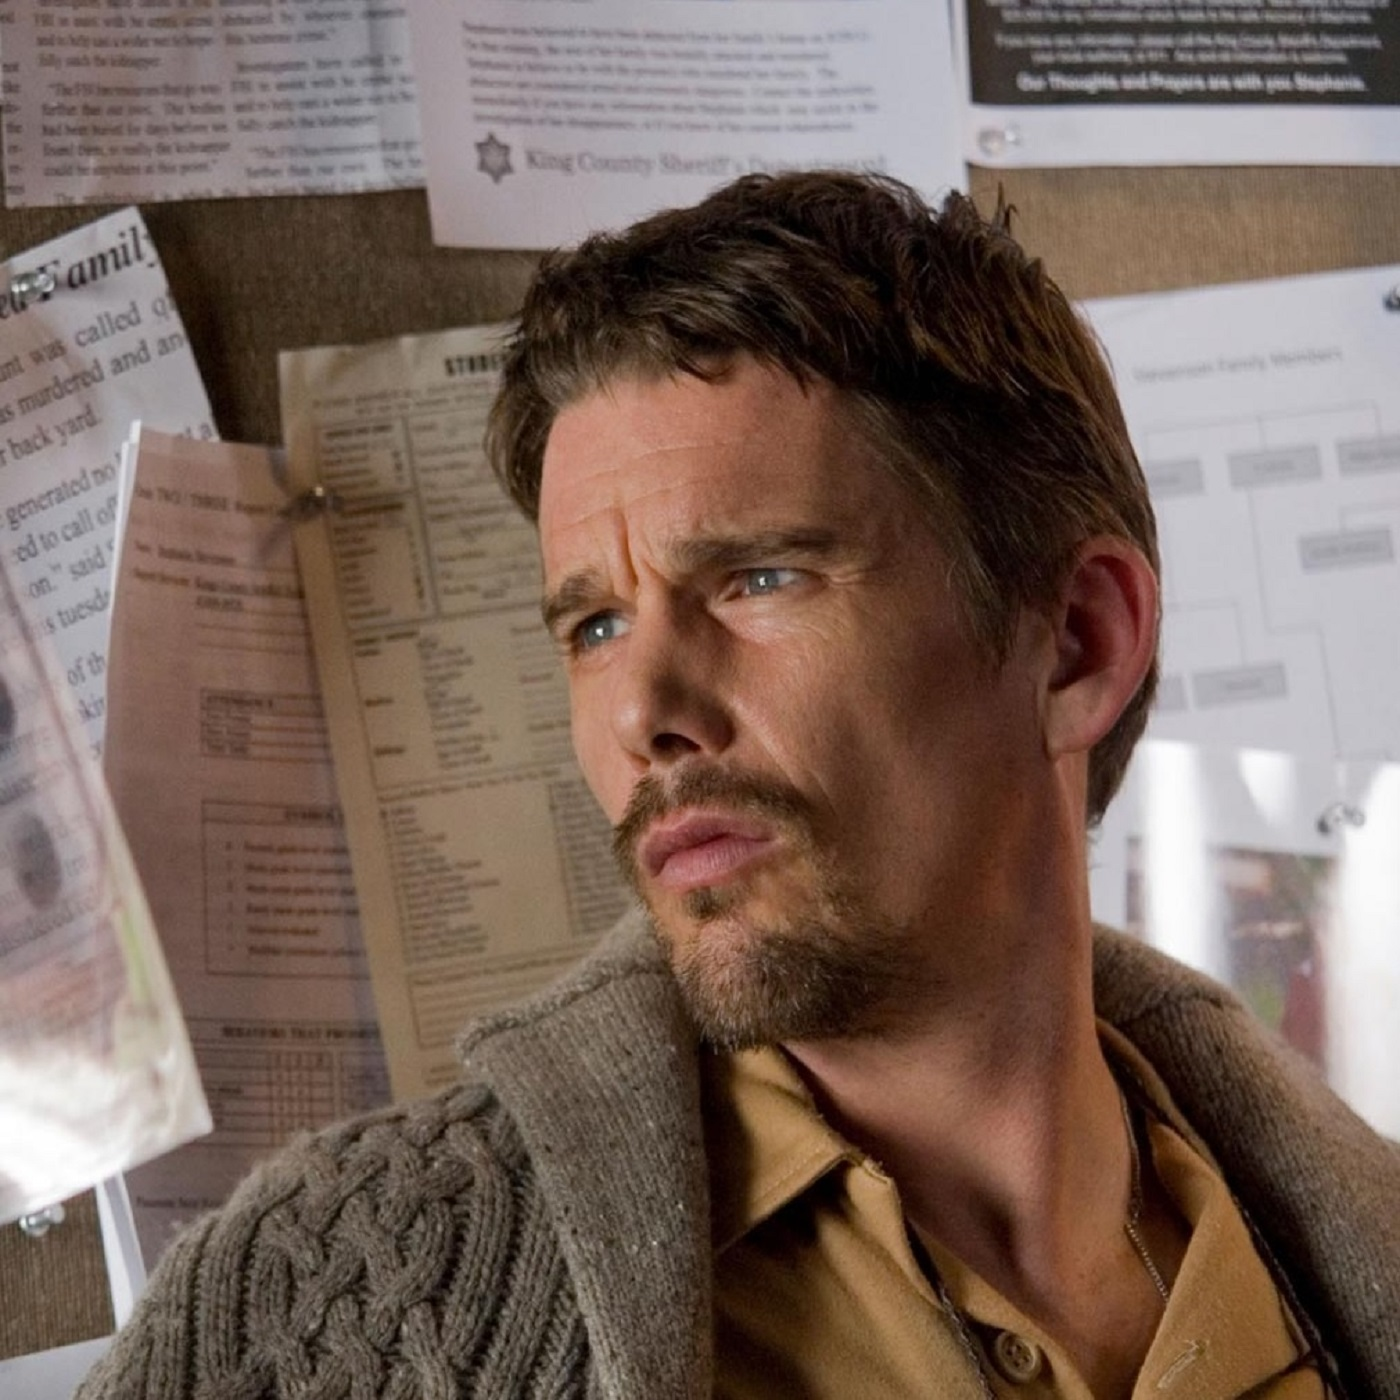 Ethan Hawke Movie Talk - Su-Spence-ful Reviews